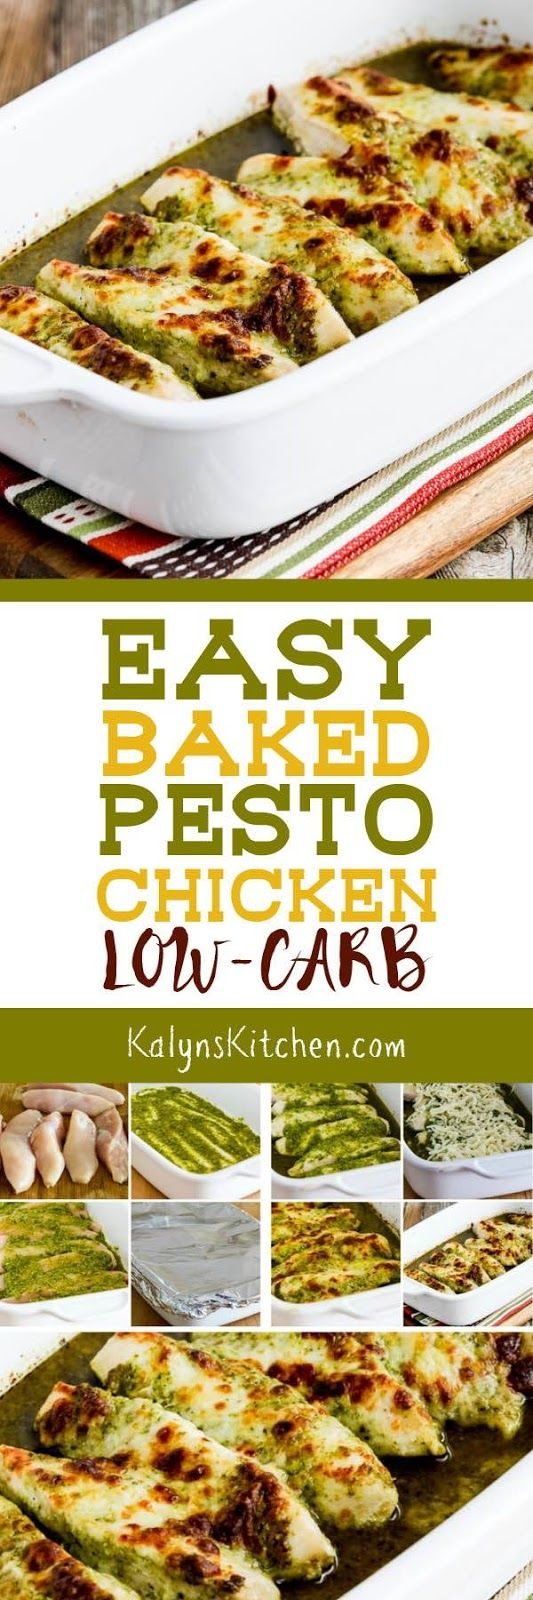 Easy Baked Pesto Chicken is a delicious low-carb dish that's also Keto, low-glycemic, gluten-free, and South Beach Diet friendly. And kids have been known to gobble this up, so it can definitely be kid-friendly as well! Serve with pasta for the kids and with cauliflower rice for the carb-conscious eaters.  [found on KalynsKitchen.com]